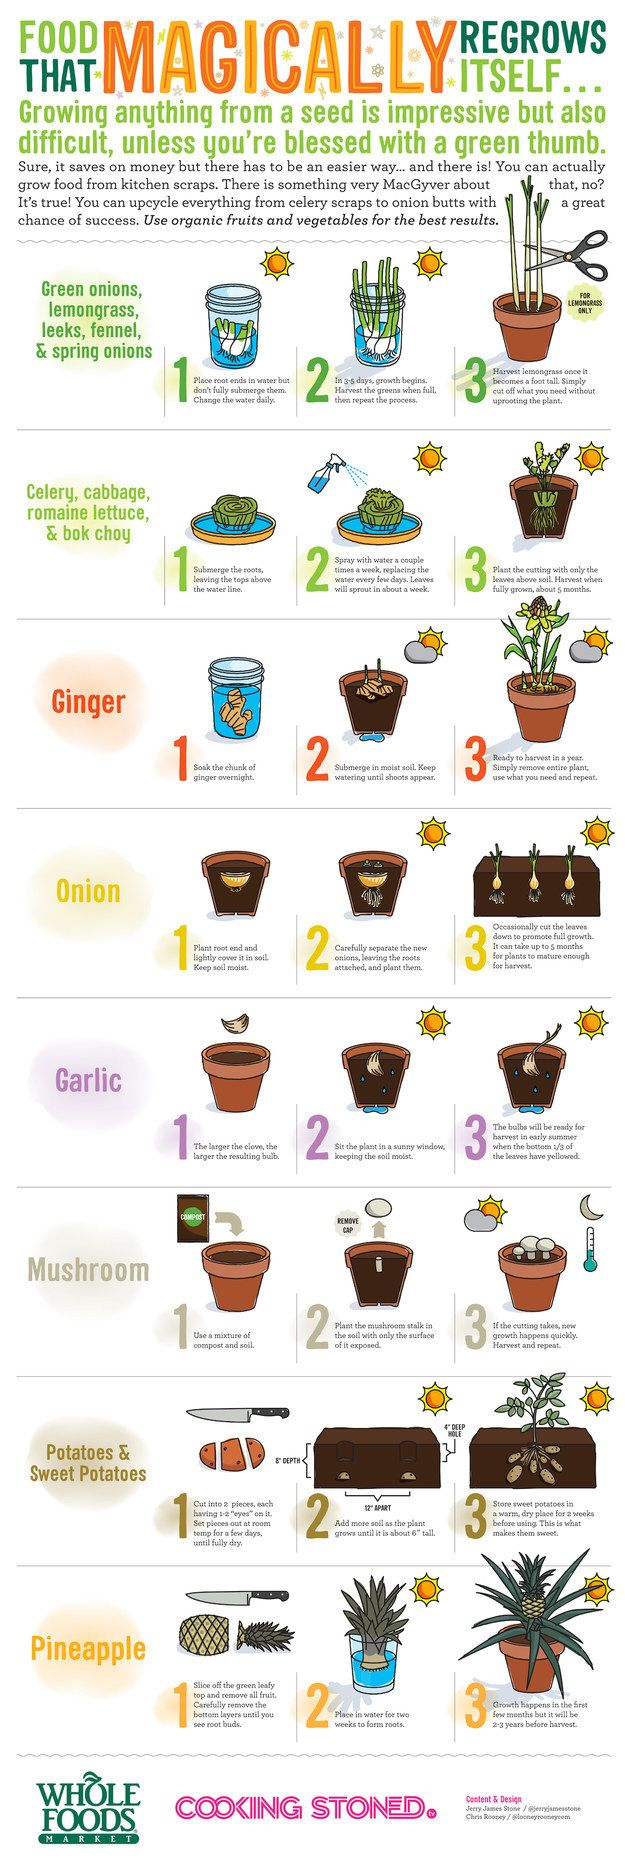 Familiarize yourself with plants that magically regrow themselves.